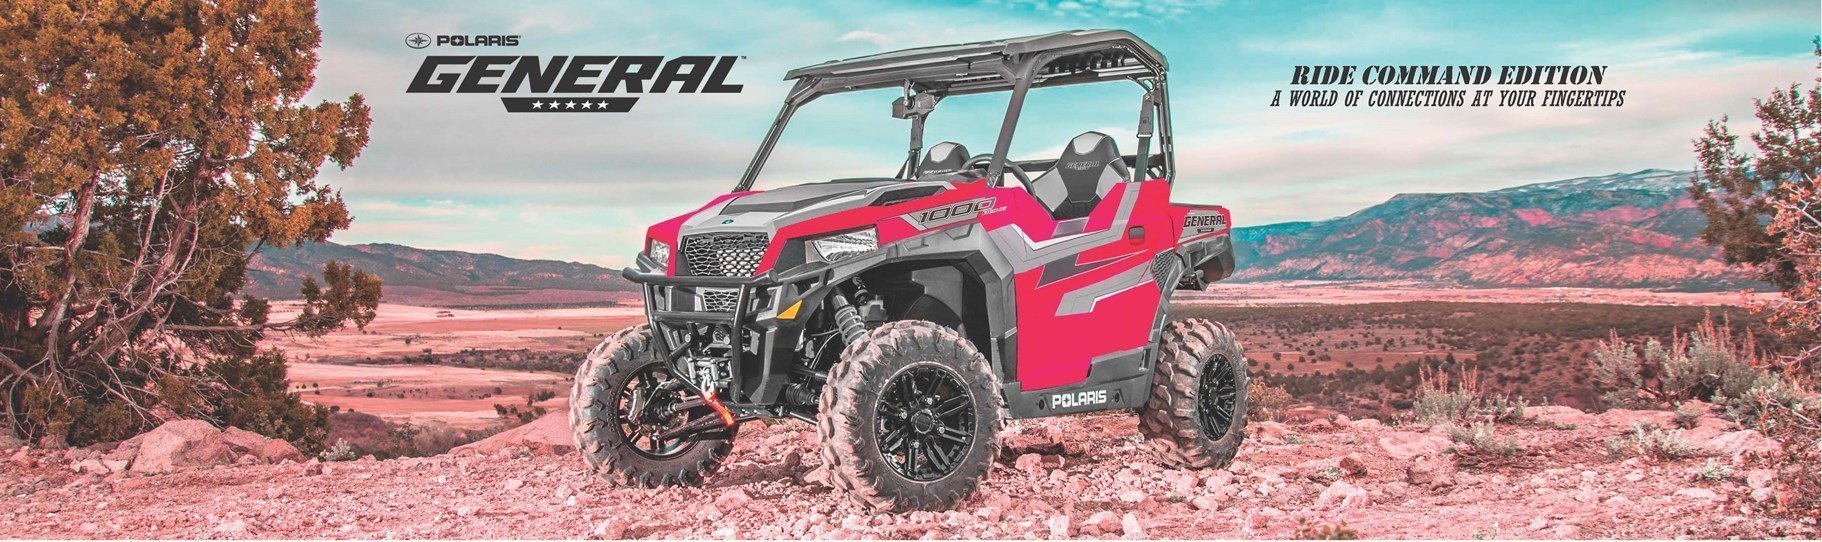 2018-polaris-general-1000-eps-ride-command-matte-sunset-red-trail-03